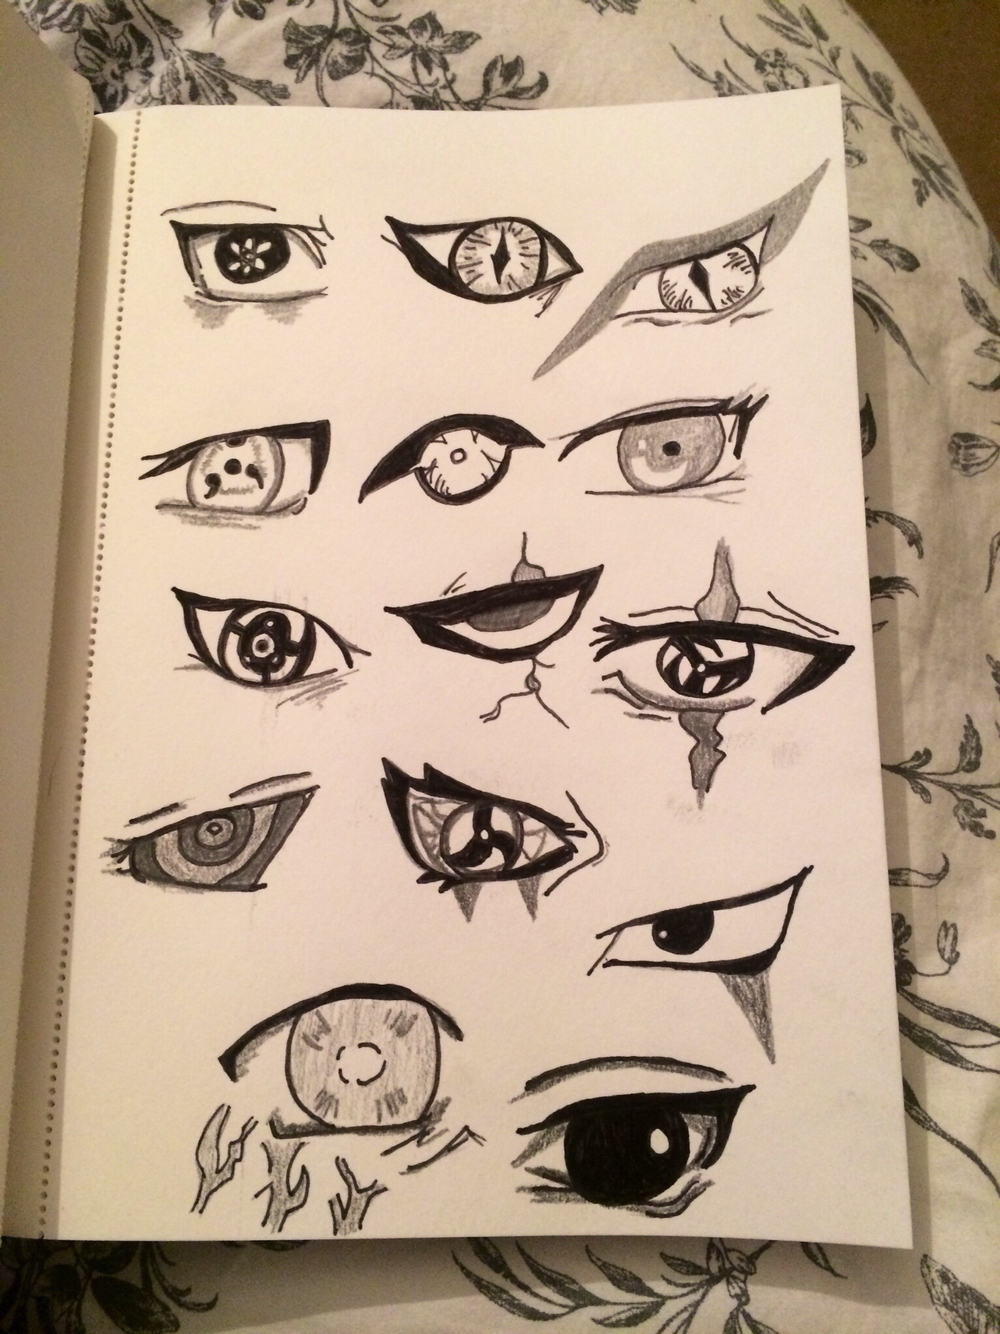 Drawn naruto naroto #eyes #eyes Anime from #drawn